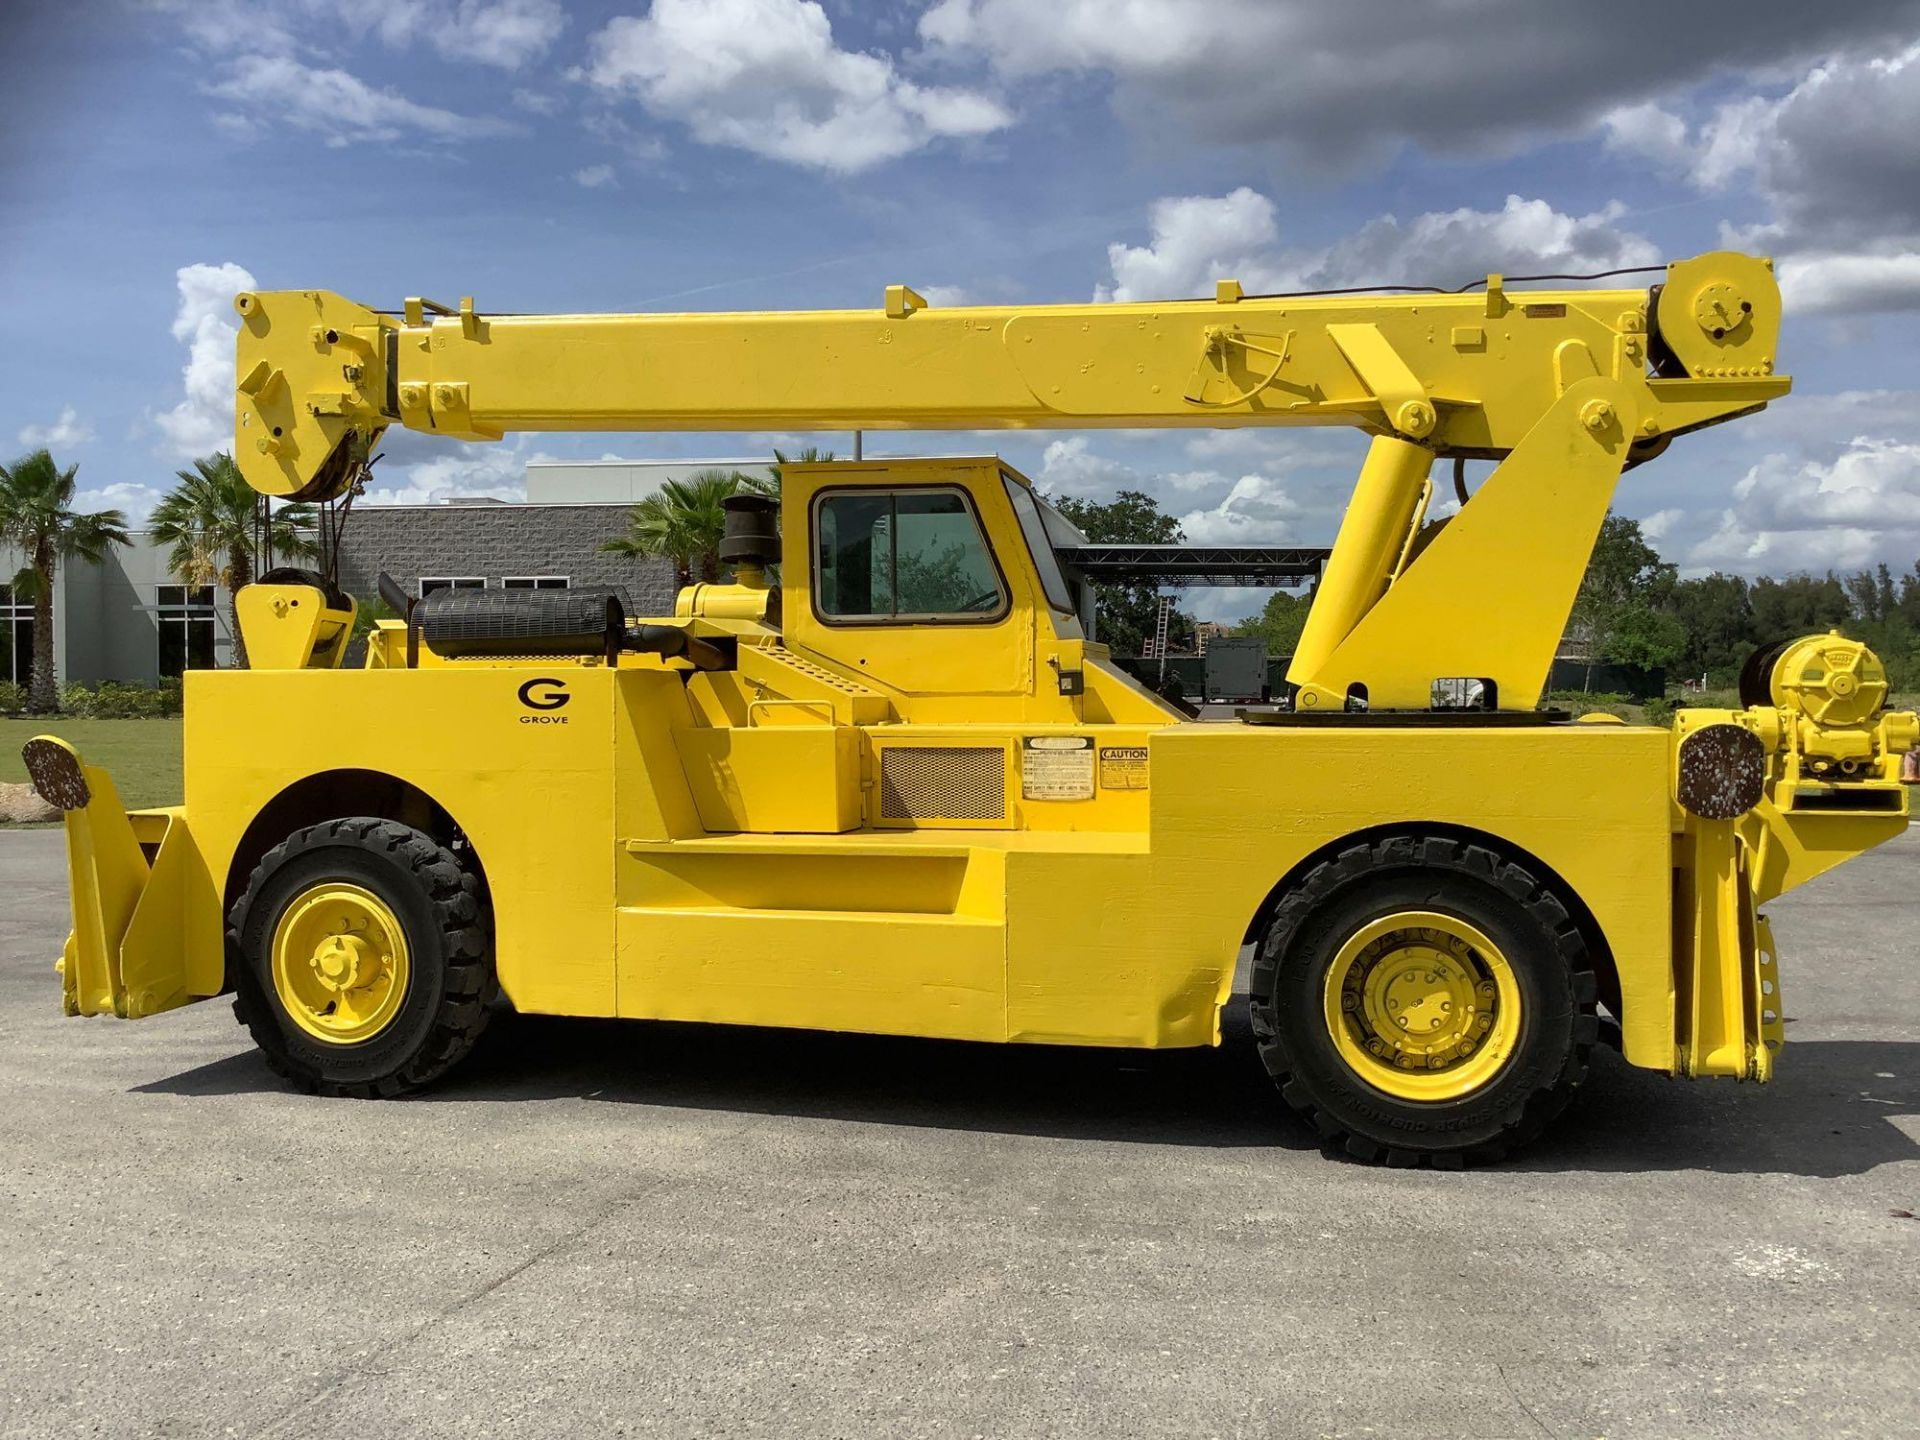 GROVE TRUCK CRANE MODEL IND1012, HYDRAULIC, TELESCOPIC, DIESEL,OUTRIGGER, RUNS AND OPERATES - Image 11 of 18